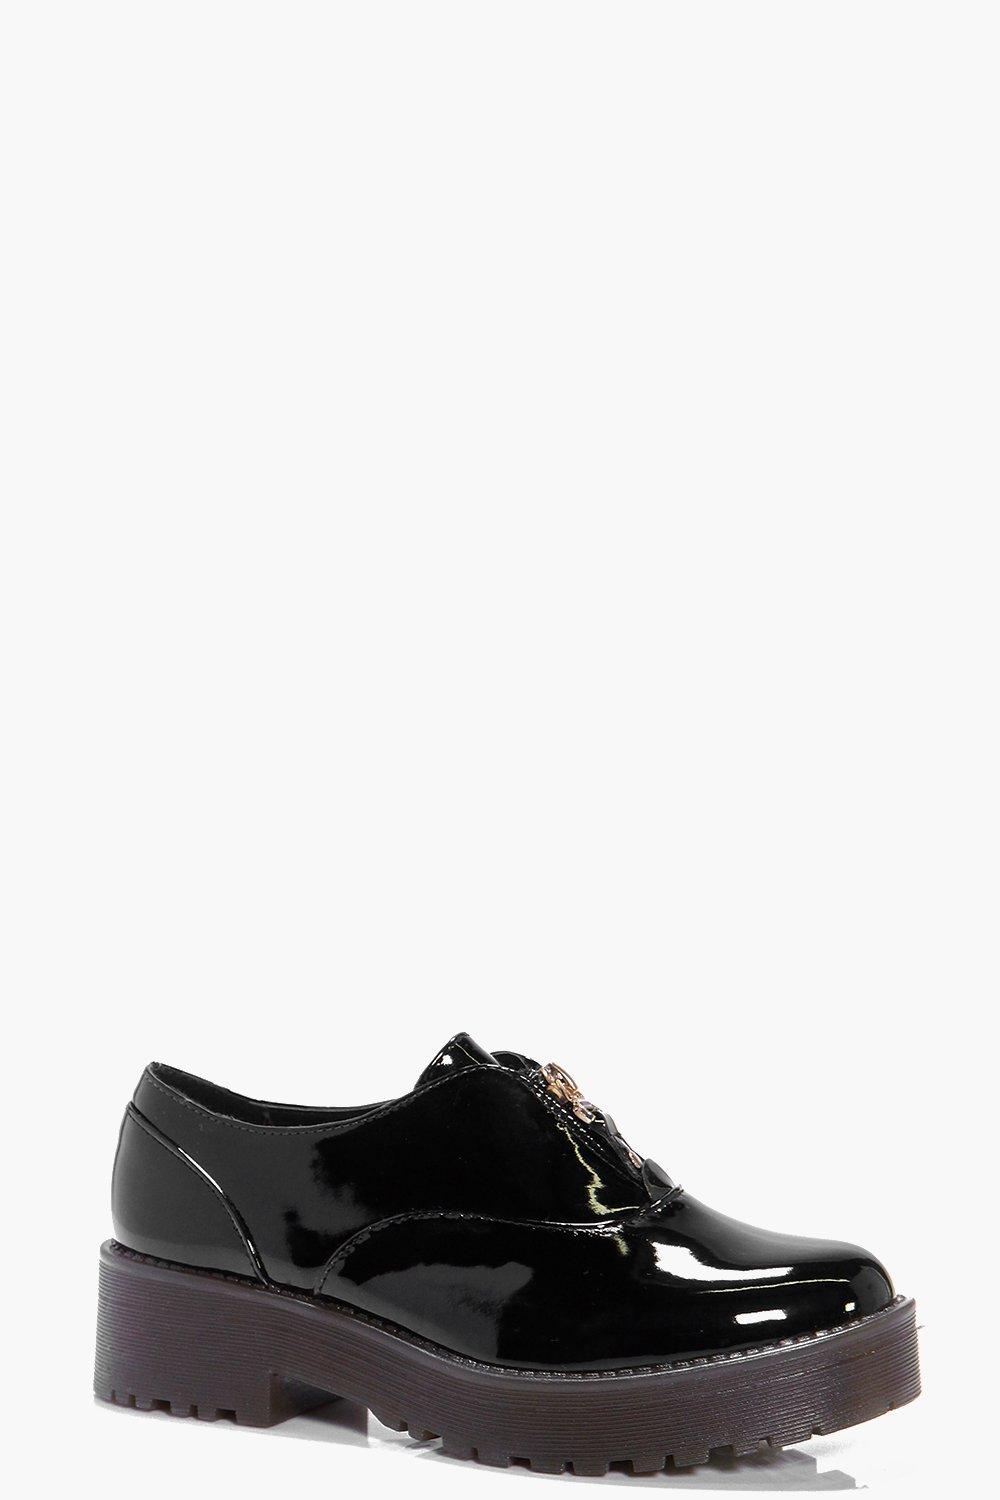 Emilia Zip Up Cleated Brogue